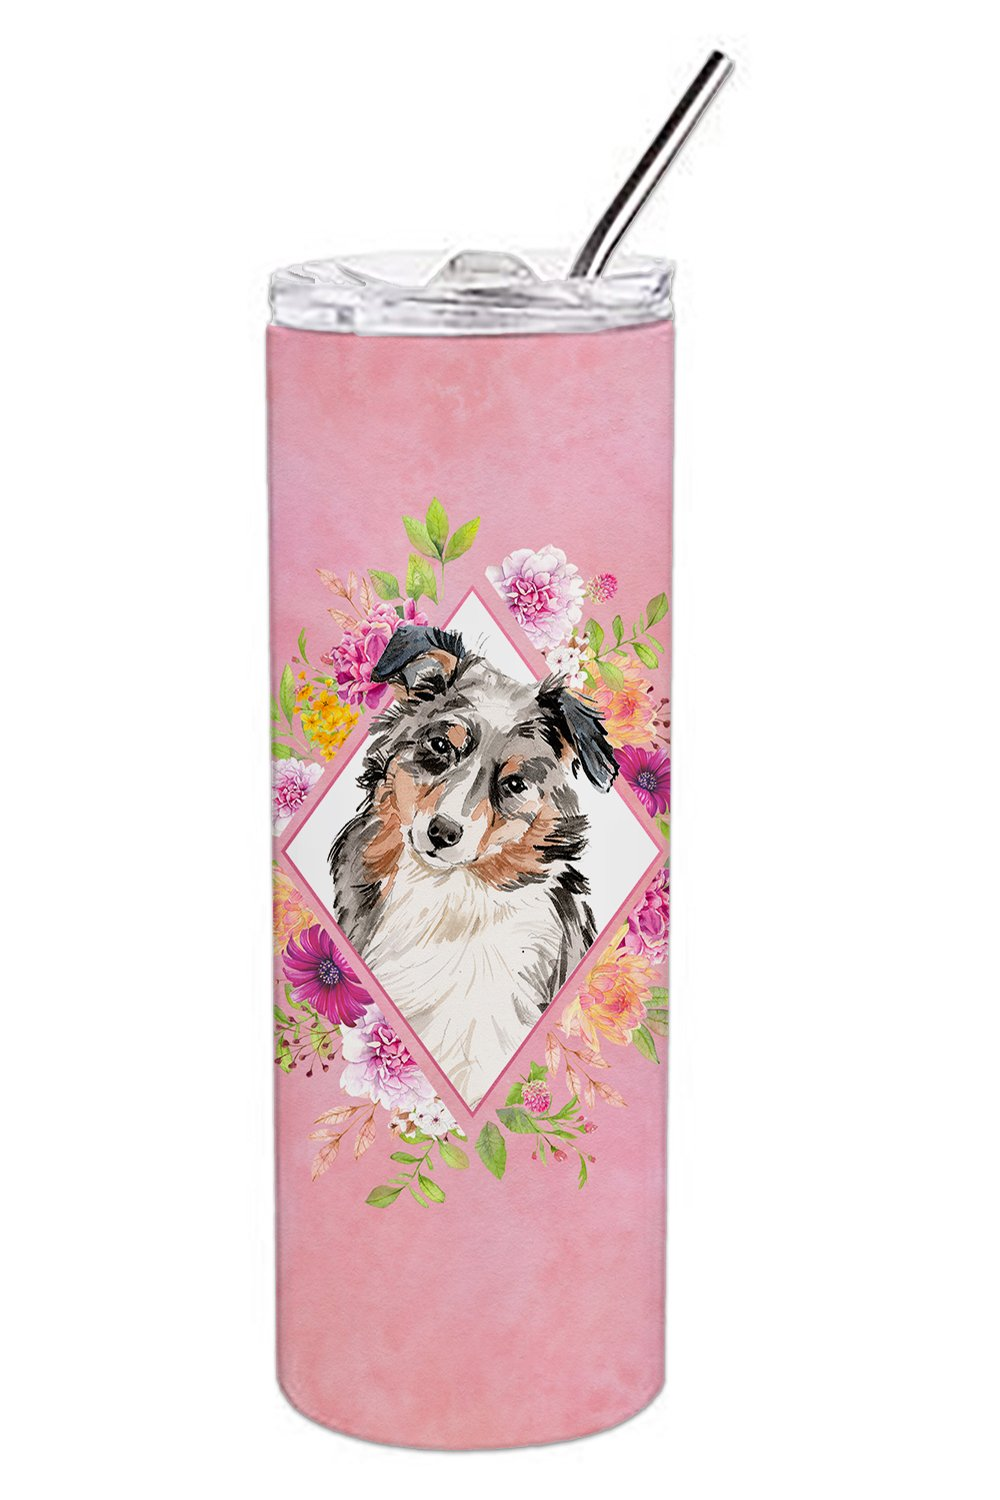 Australian Shepherd Pink Flowers Double Walled Stainless Steel 20 oz Skinny Tumbler CK4267TBL20 by Caroline's Treasures